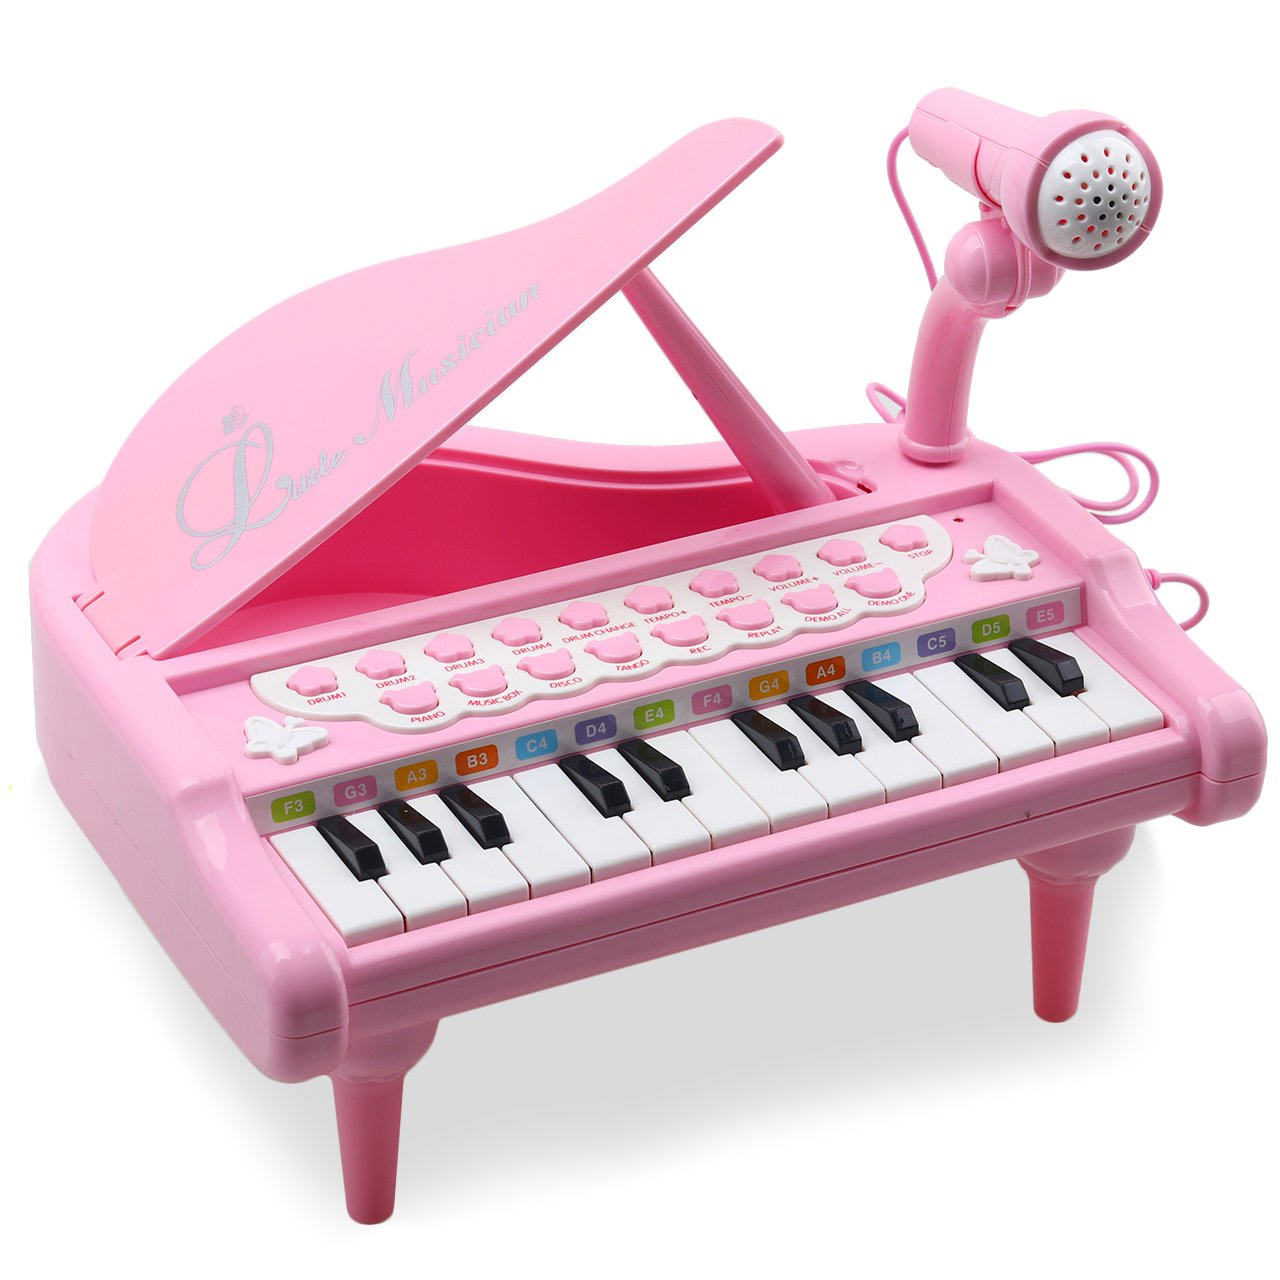 Amy & Benton Toddler Piano Toy Keyboard for Kids 24 Keys Pink Birthday Gift Toys for Baby